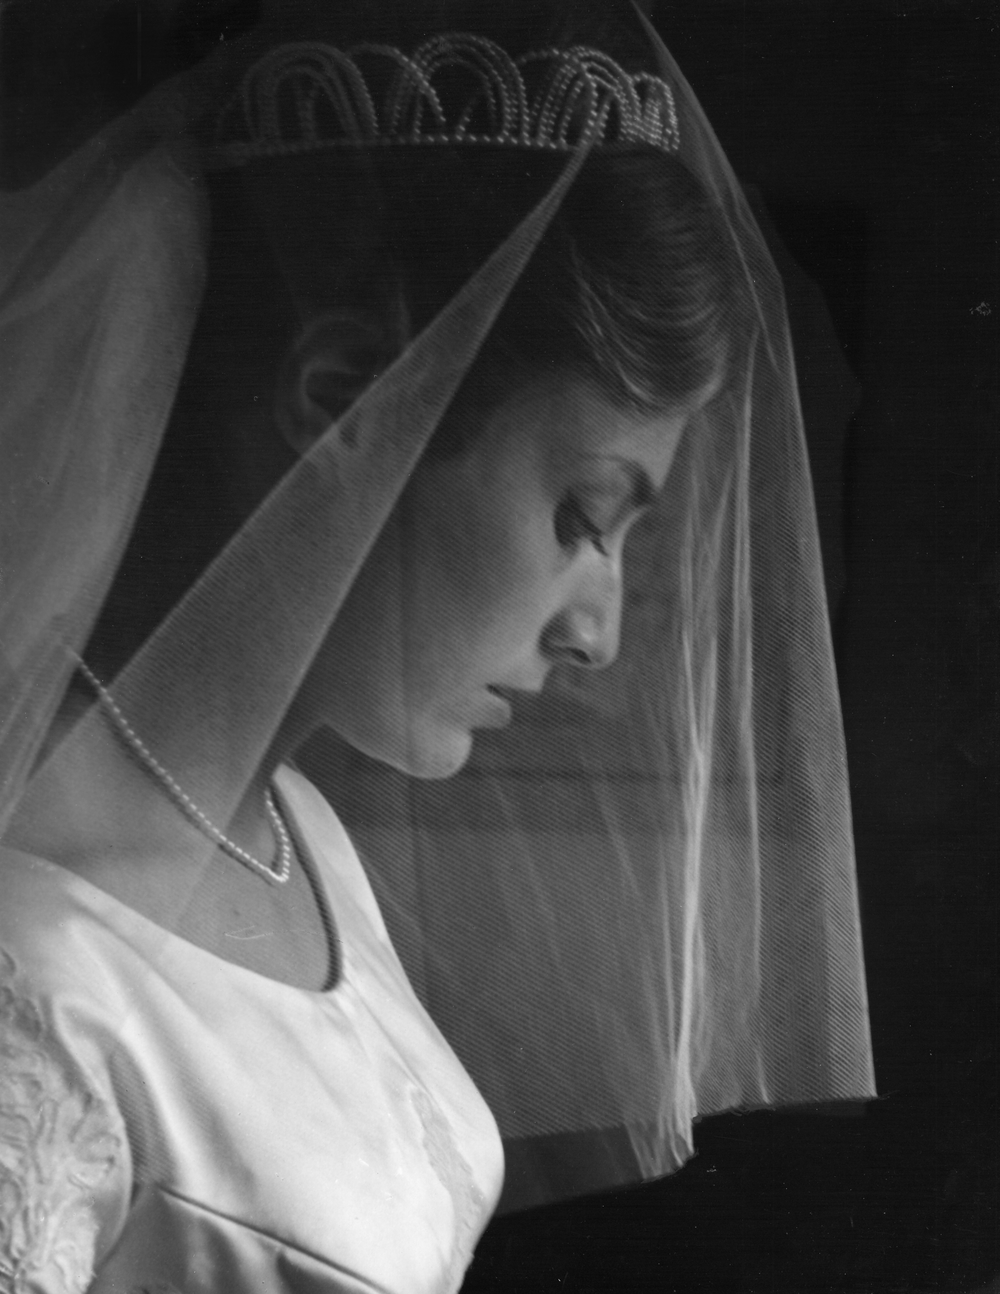 My mother, photographed by my grandfather on her Wedding Day